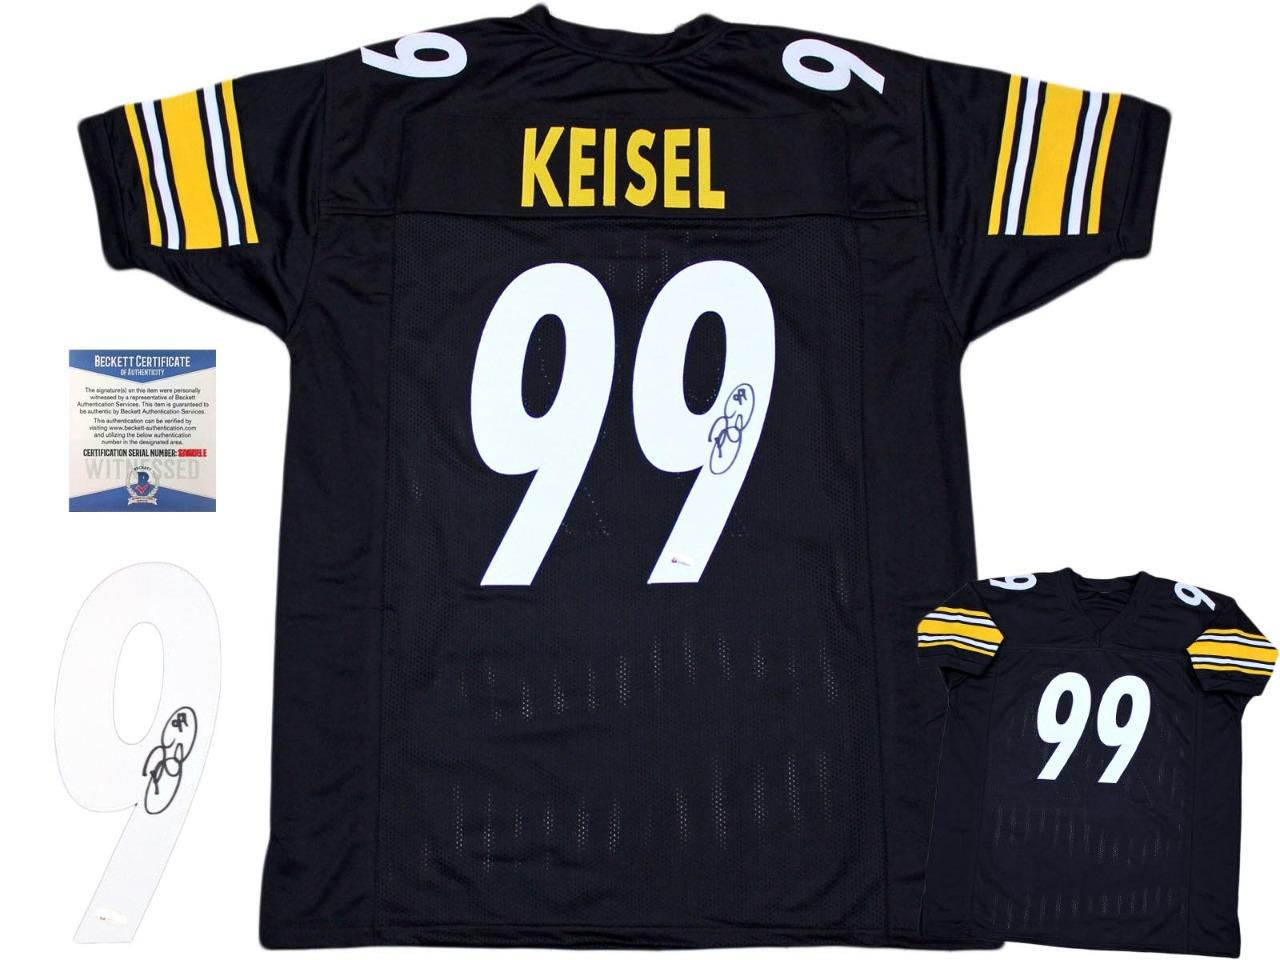 Brett Keisel Autographed Signed Jersey - Black - Beckett Authentic